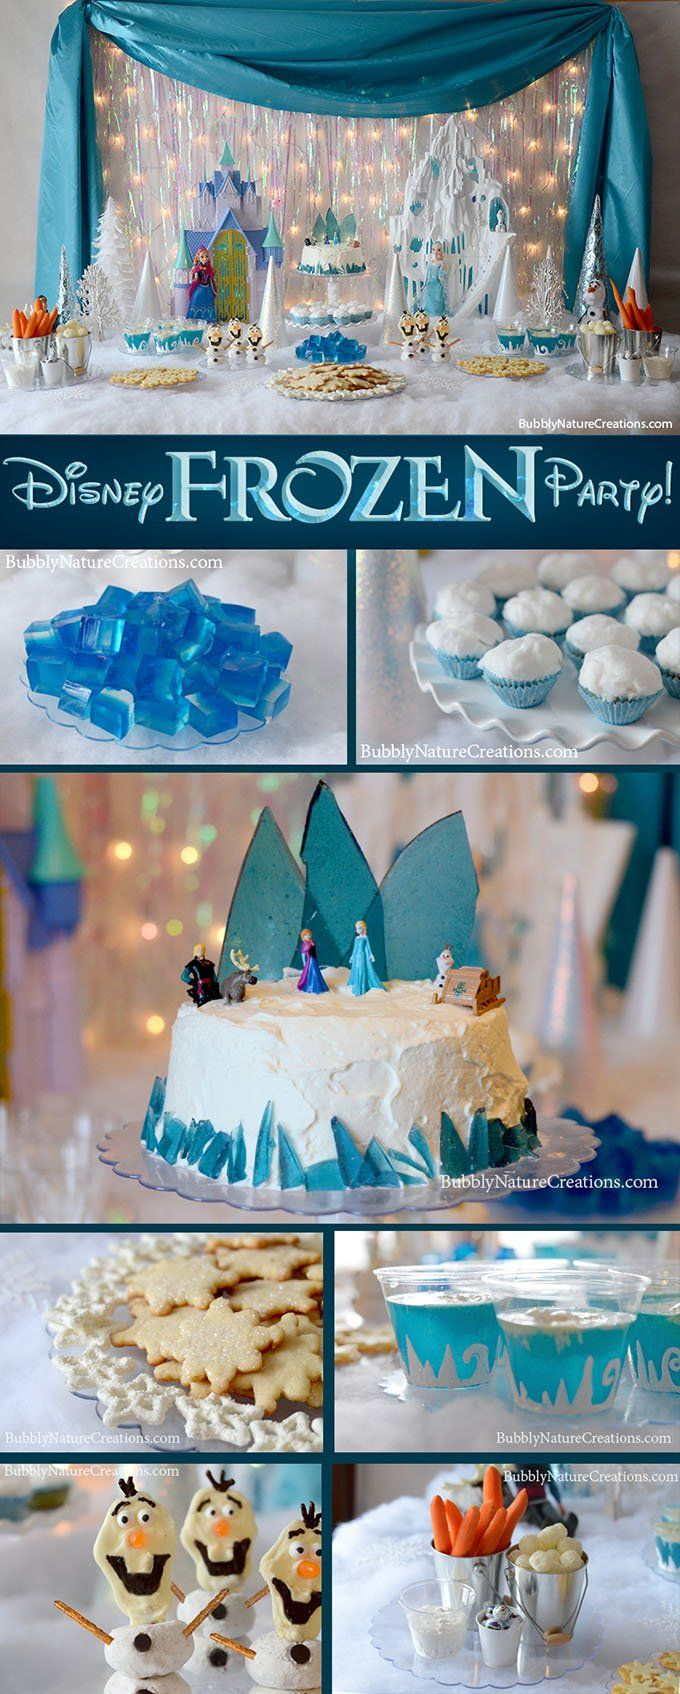 Disney Frozen Party The Ultimate FROZEN party full of the best